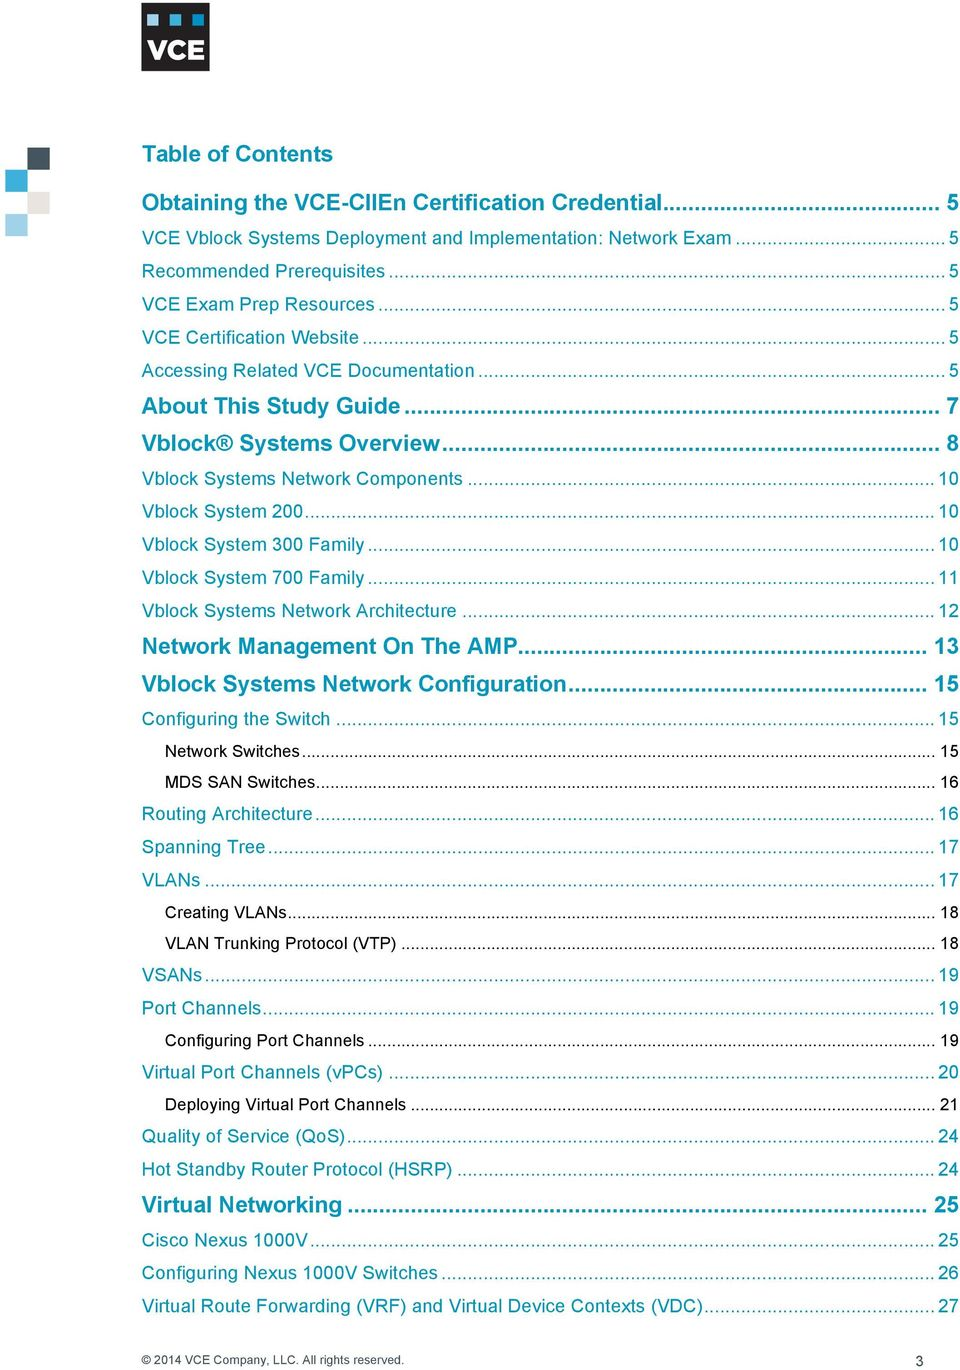 Vce Vblock Systems Deployment And Implementation Network Exam Pdf